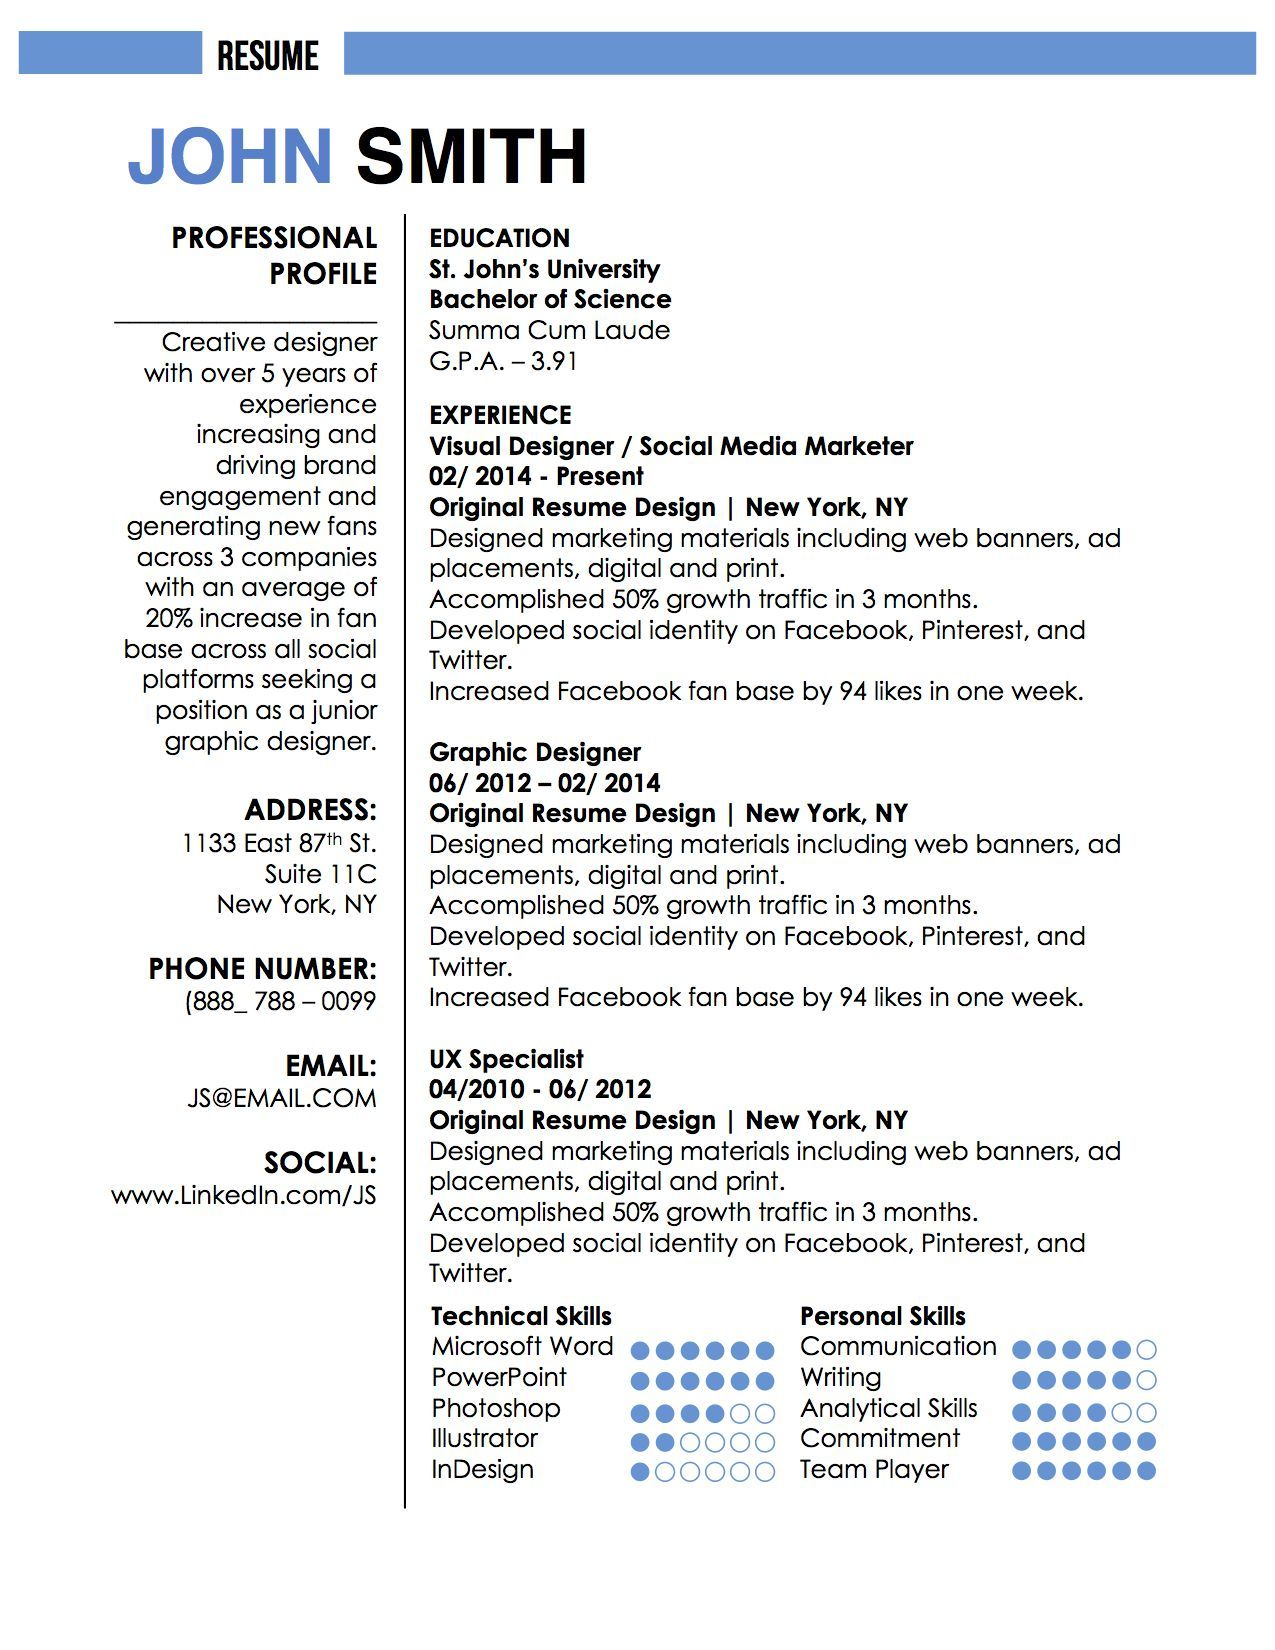 John Smith Resume | Writing | Pinterest | John smith